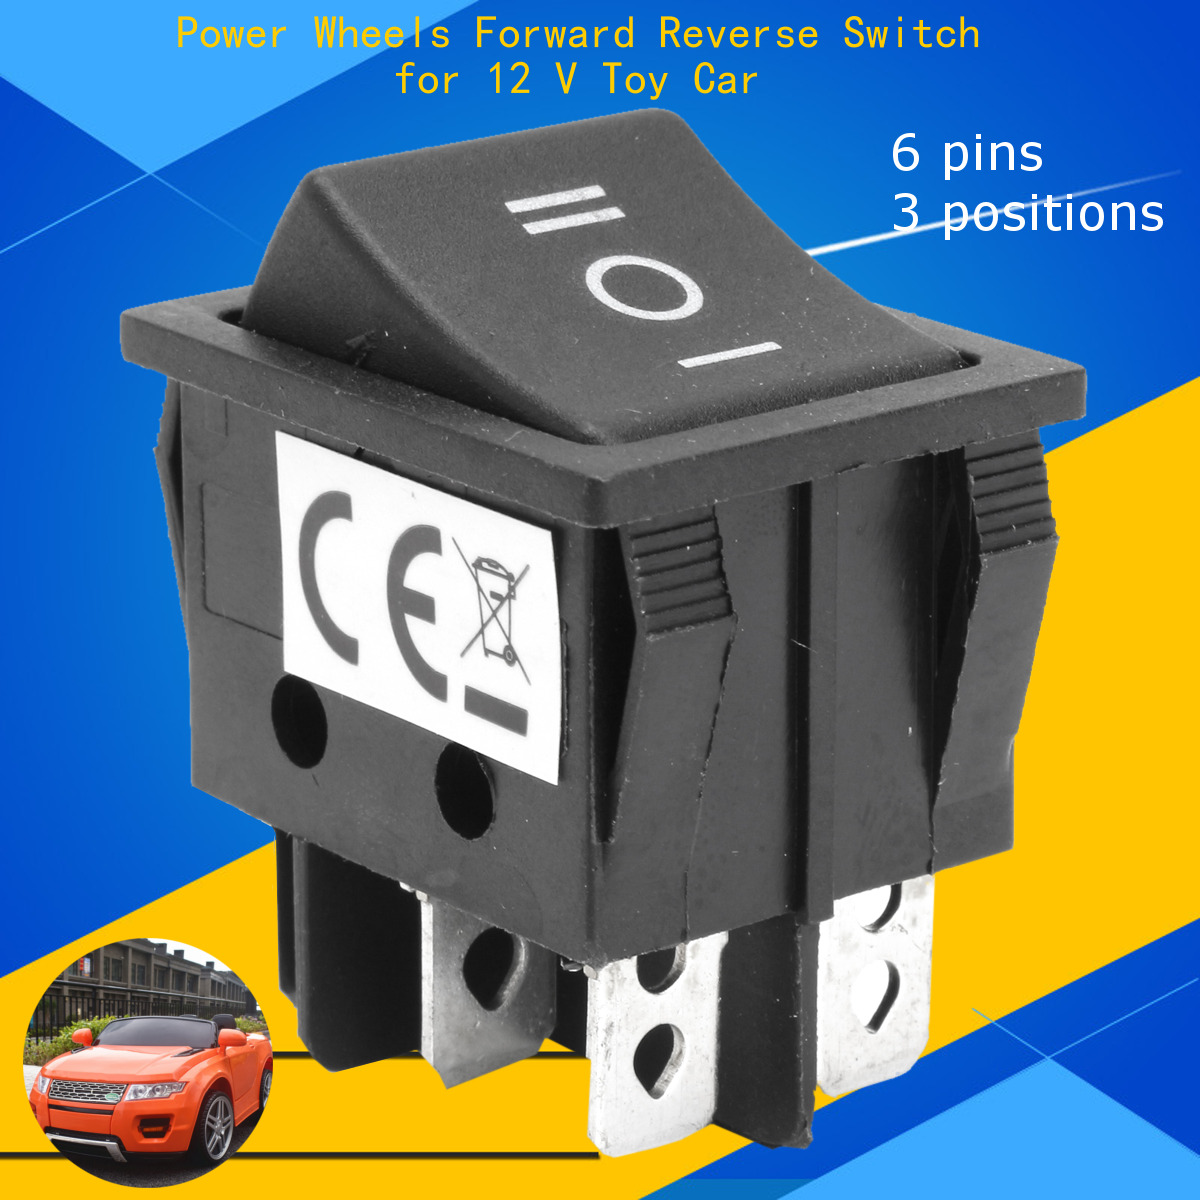 6 Pin 3 Positions T105/55 Forward Reverse Switch For 12V Toy Tyco Power Wheels Forward Reverse Switch  Car Power Wheel